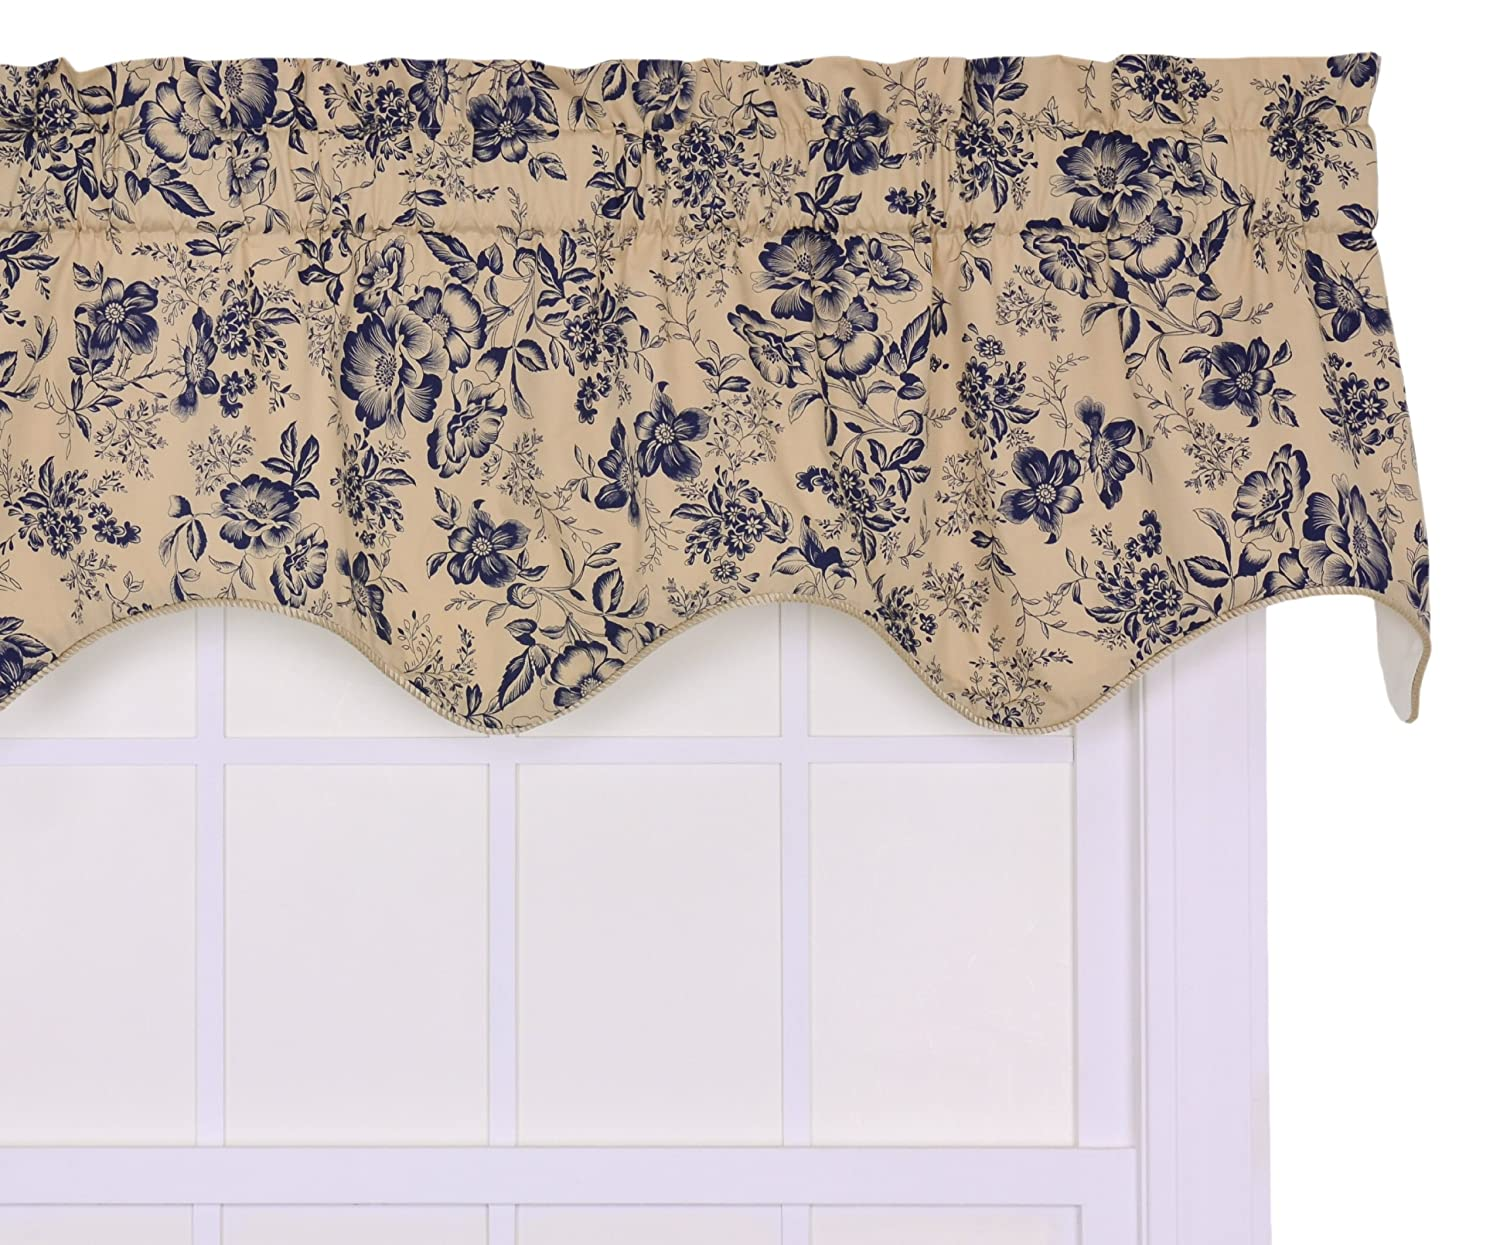 Ellis Curtain Palmer Floral Toile Lined Duchess Filler Valance Window Curtain, Navy